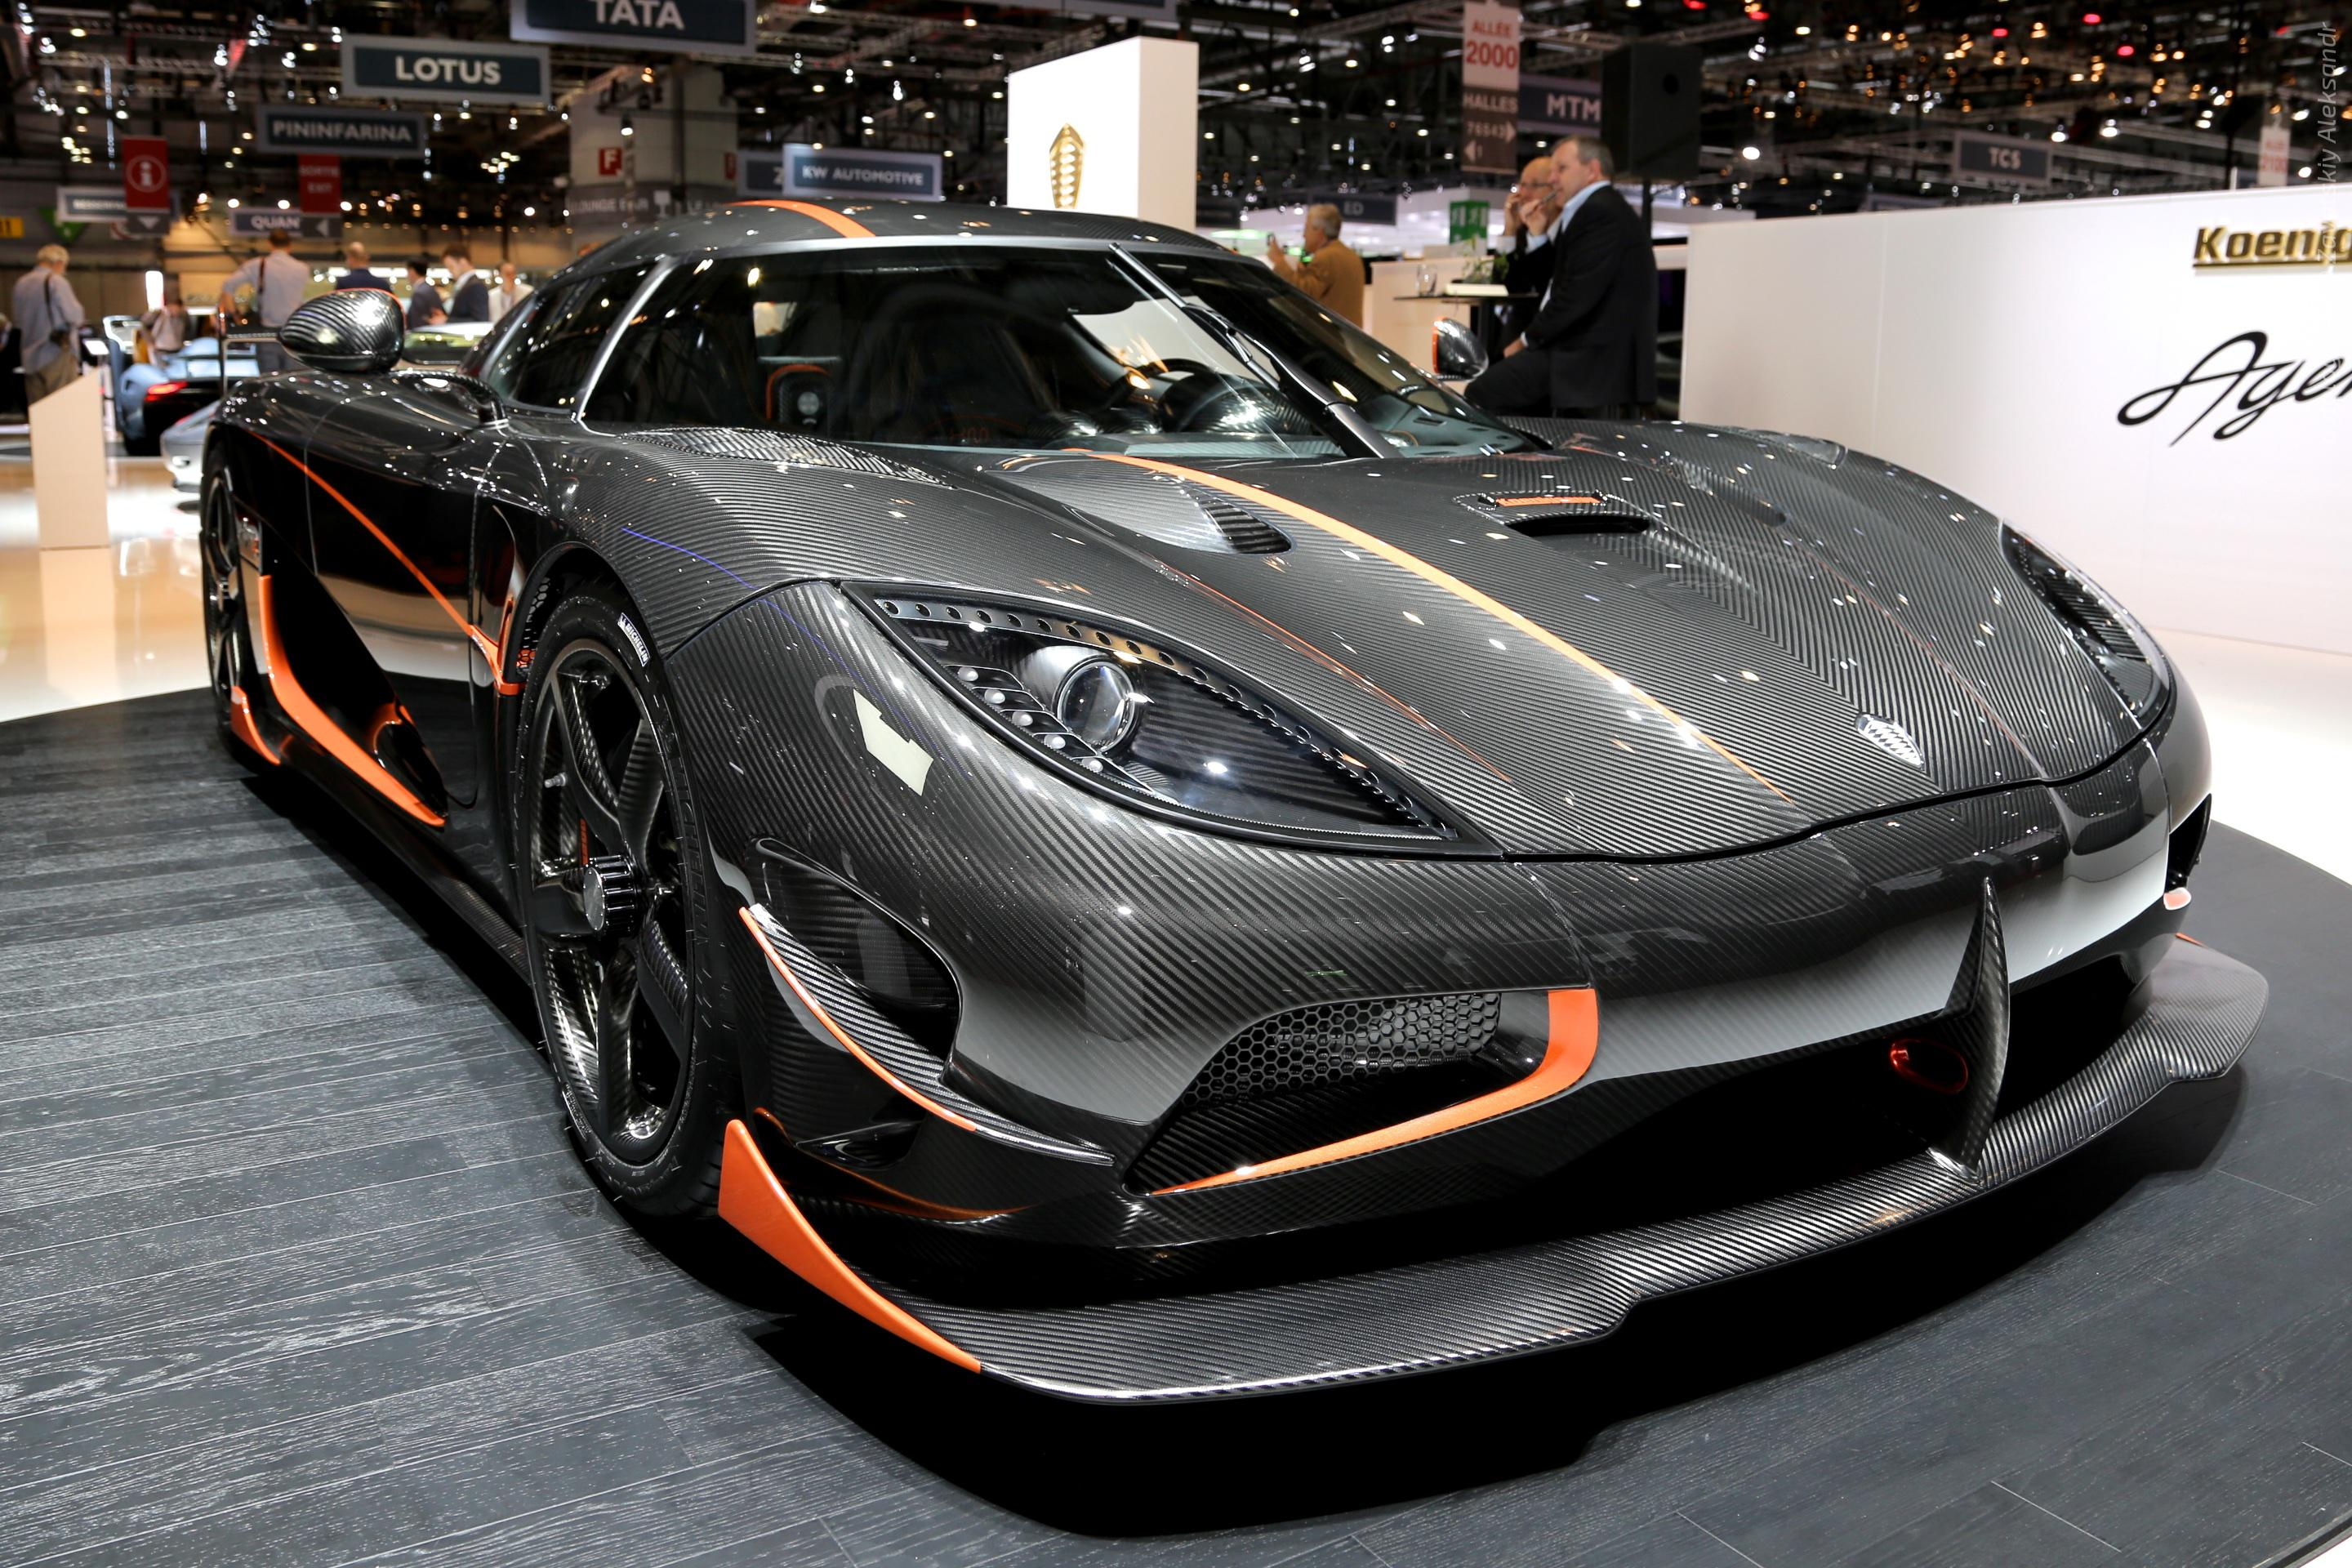 Exterior Preview: 2015 Koenigsegg Agera RS